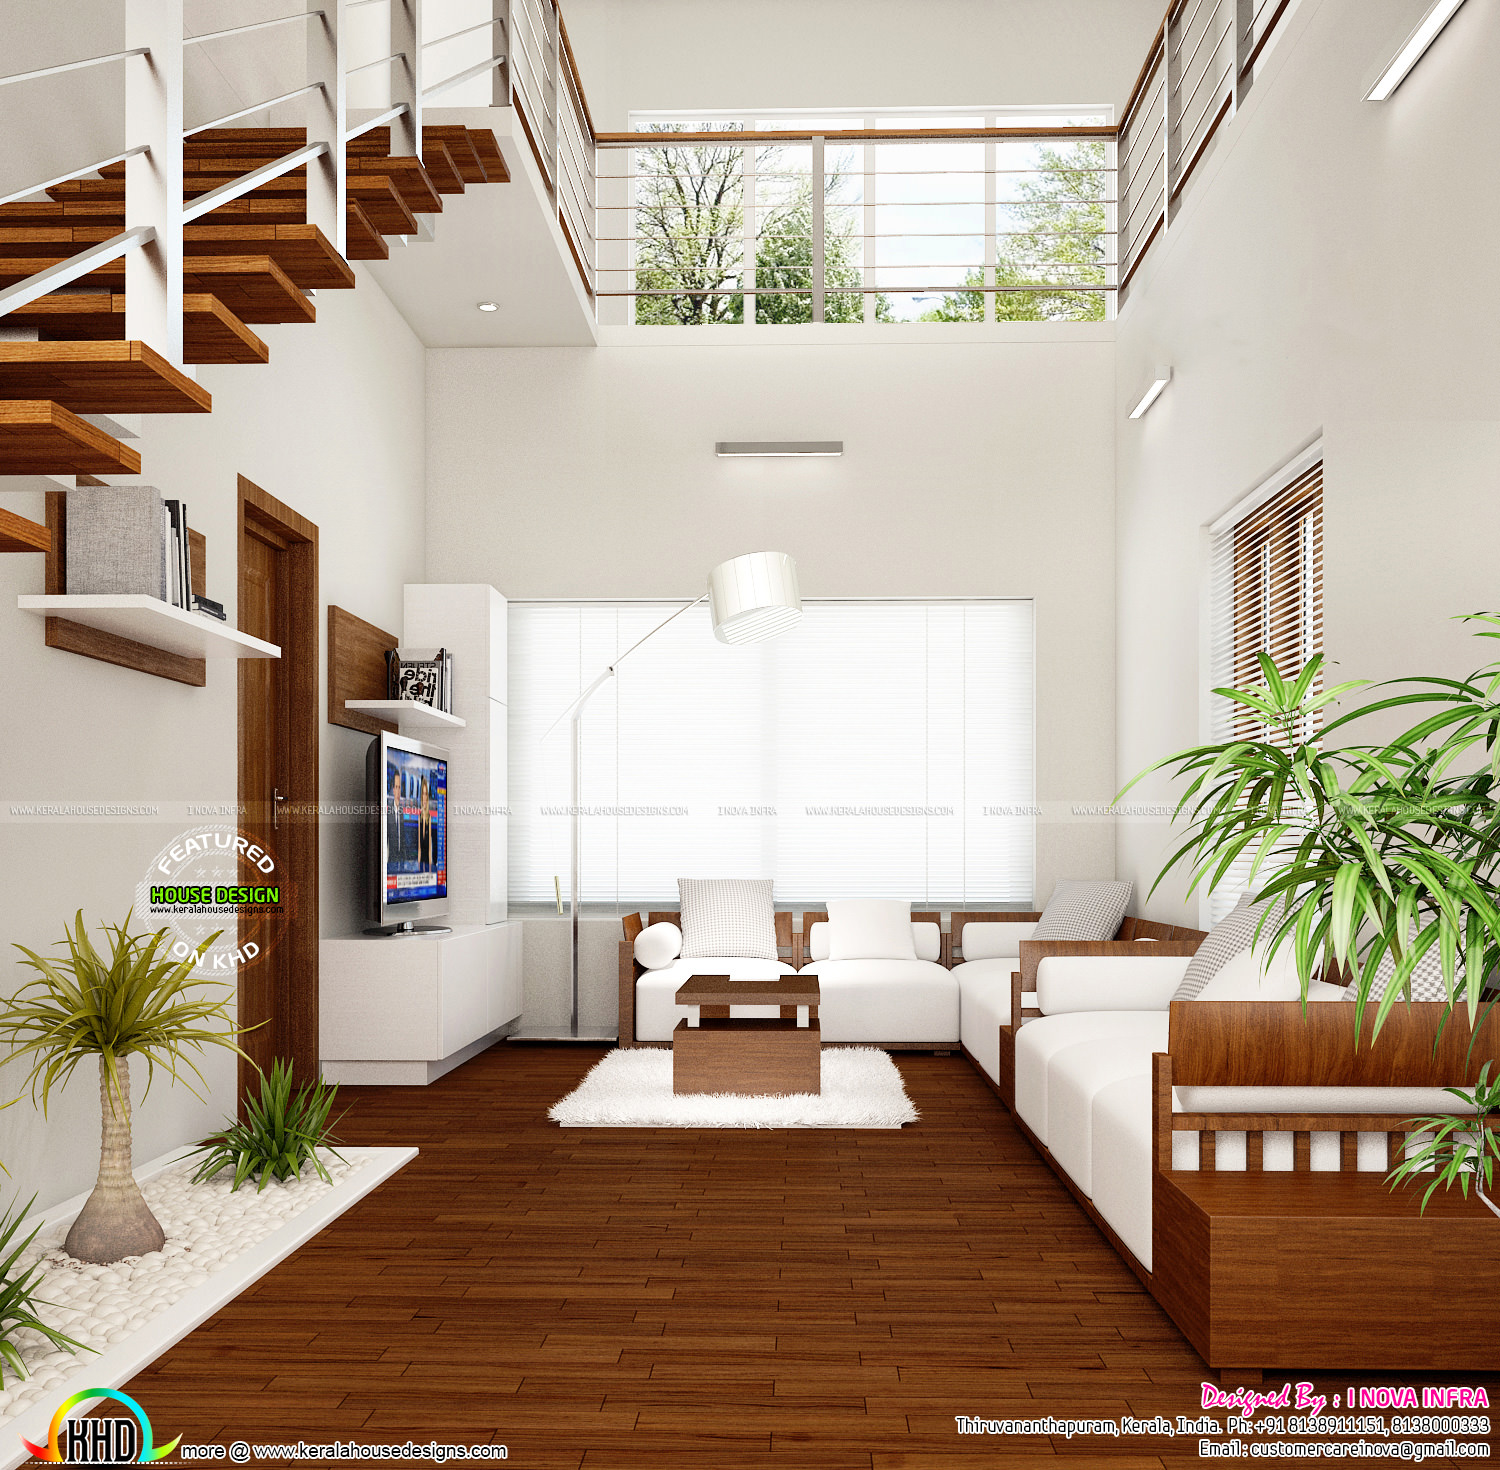 New classical interior works at trivandrum kerala home for Picture of interior designs of house